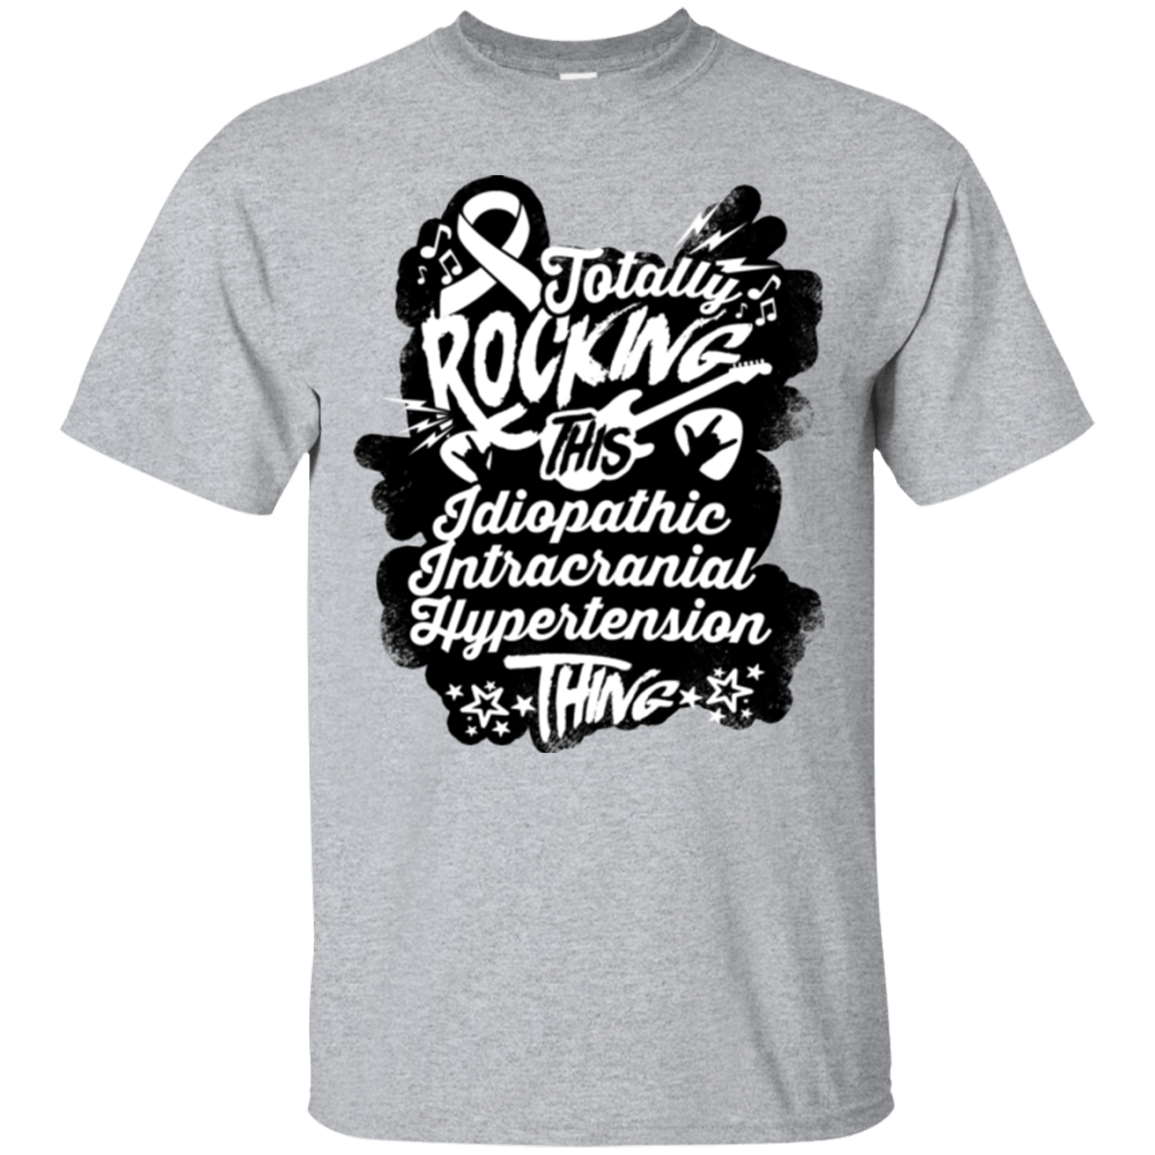 T-Shirts - Rocking Idiopathic Intracranial Hypertension Unisex Shirt